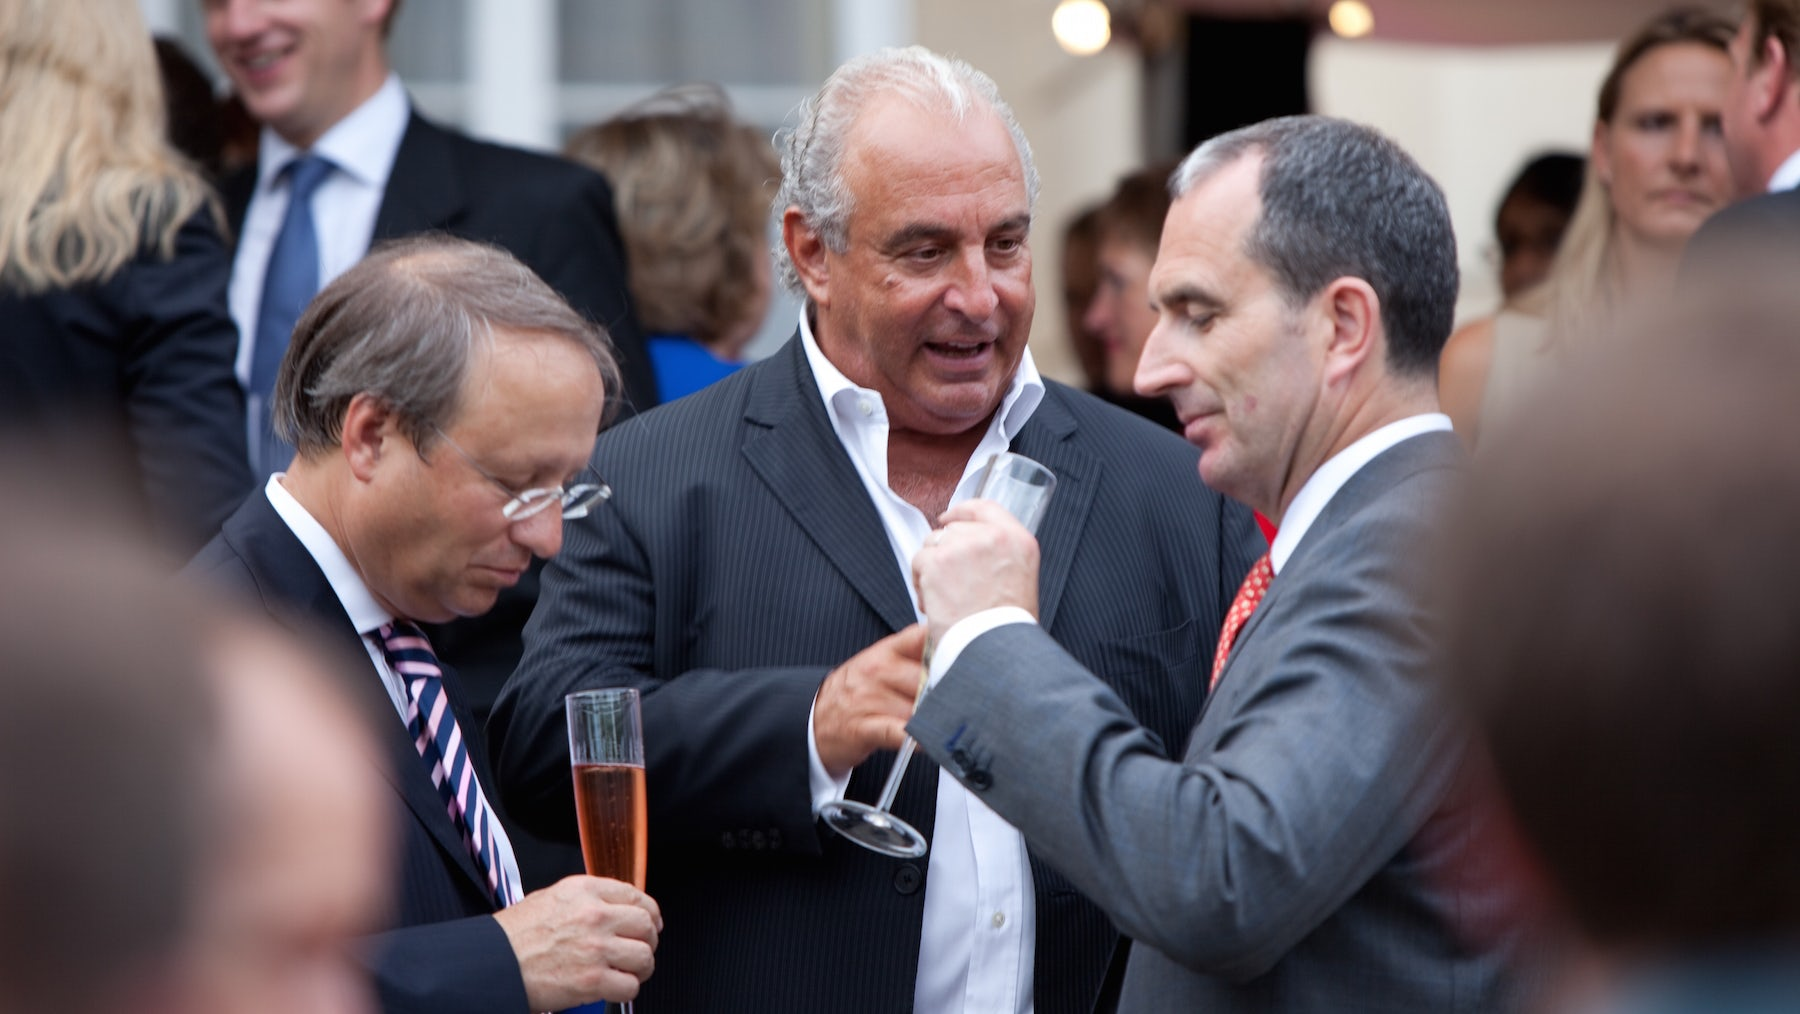 Sir Philip Green (centre) | Source: Wikimedia Commons